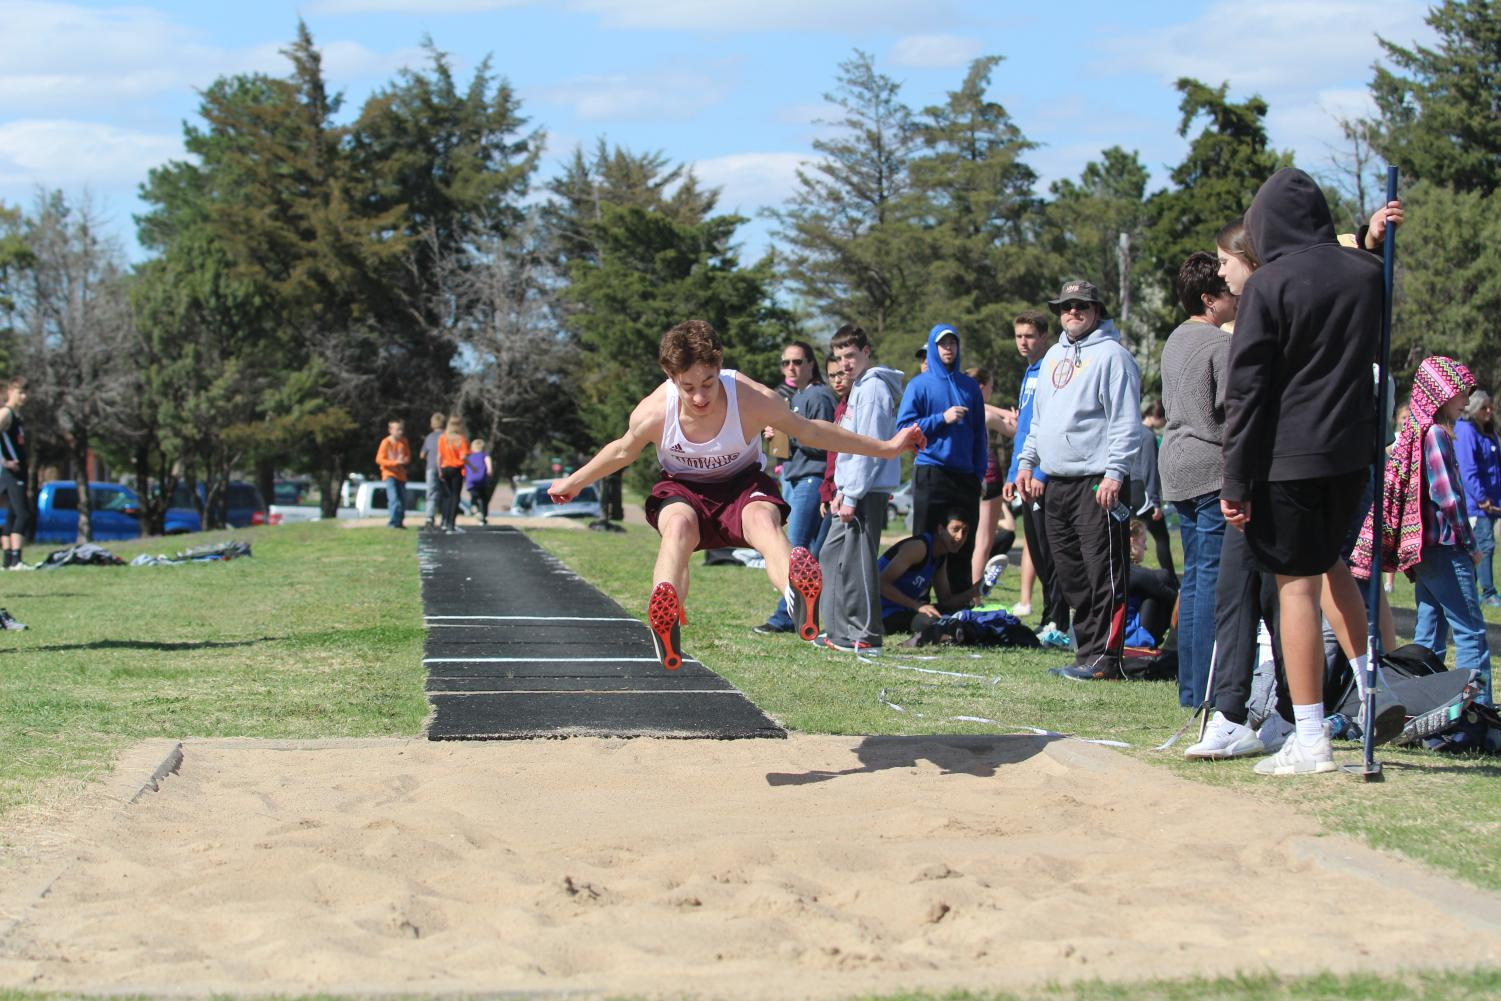 Sophomore Kyler Beckman jumps at a previous track meet in Larned. Both track teams competed at the McPherson Varsity Invitational on April 25.